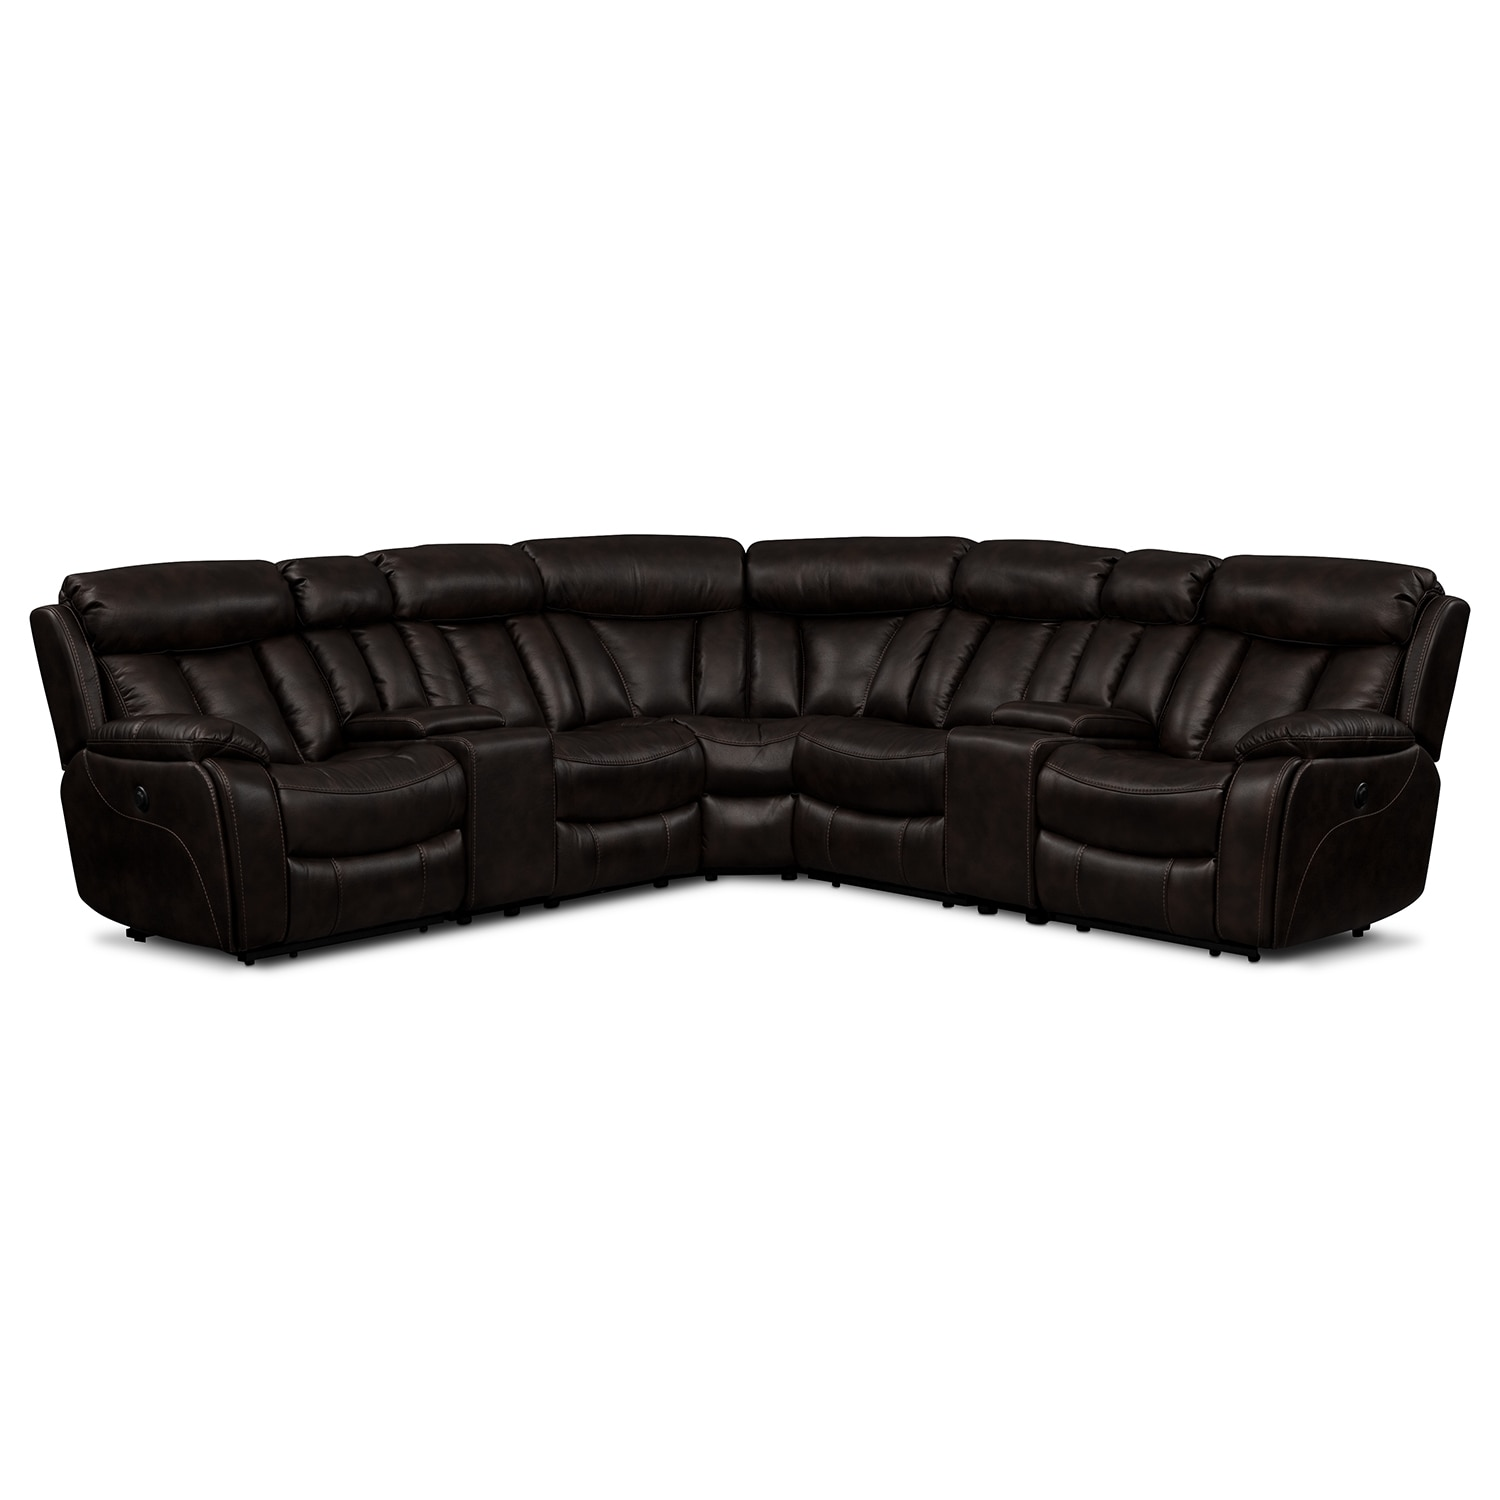 Diablo 7-Piece Power Reclining Sectional with Armless Recliner - Walnut